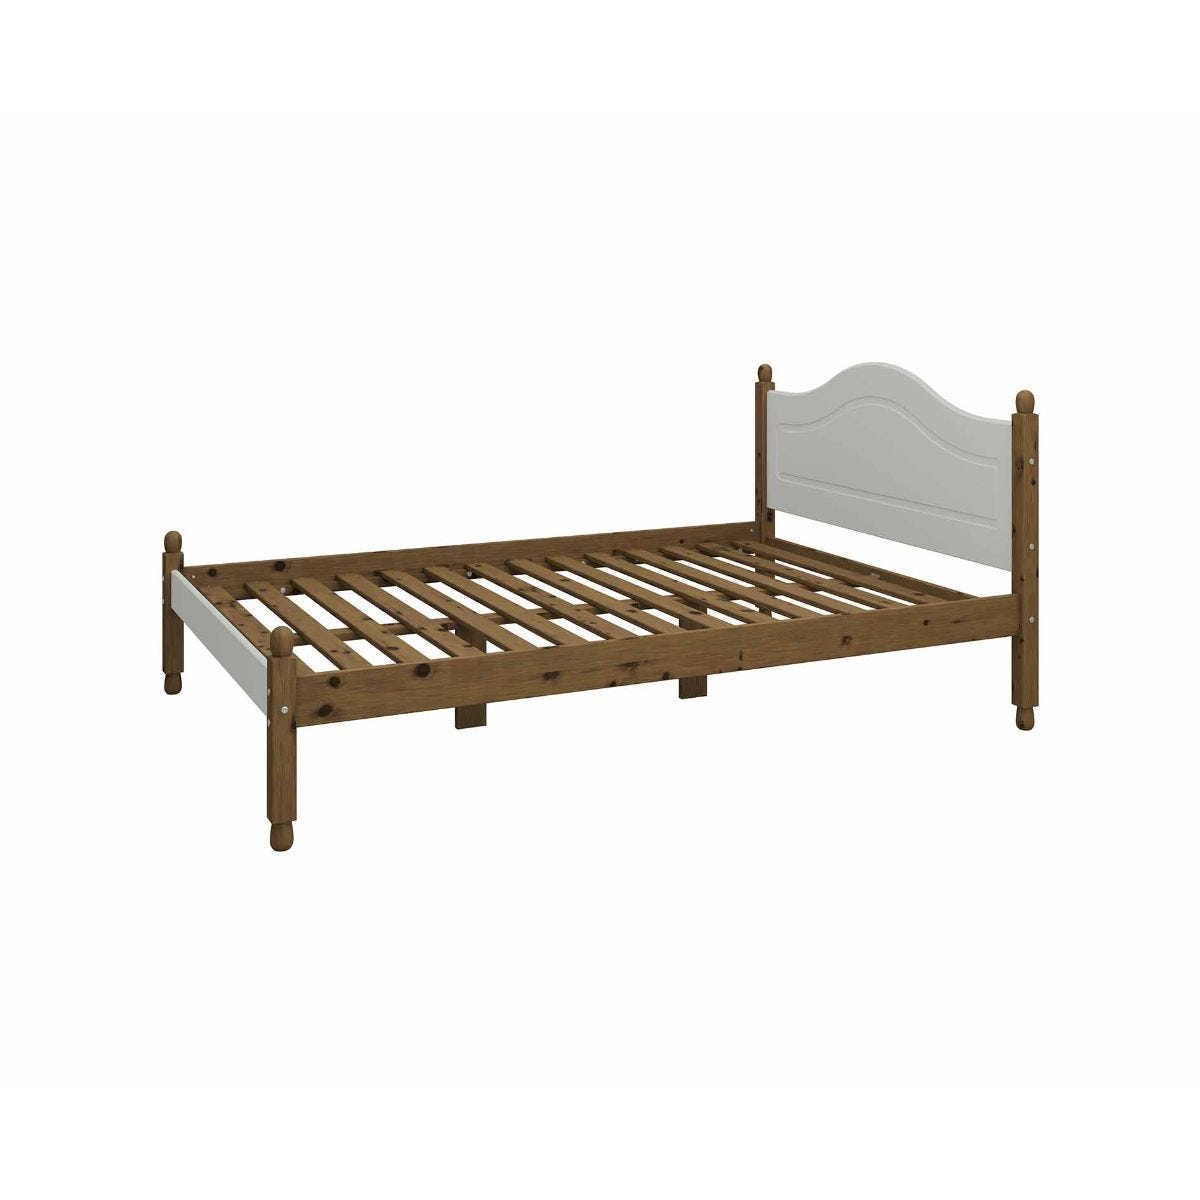 Steens Richmond Double Bed Frame 4ft 6, Grey